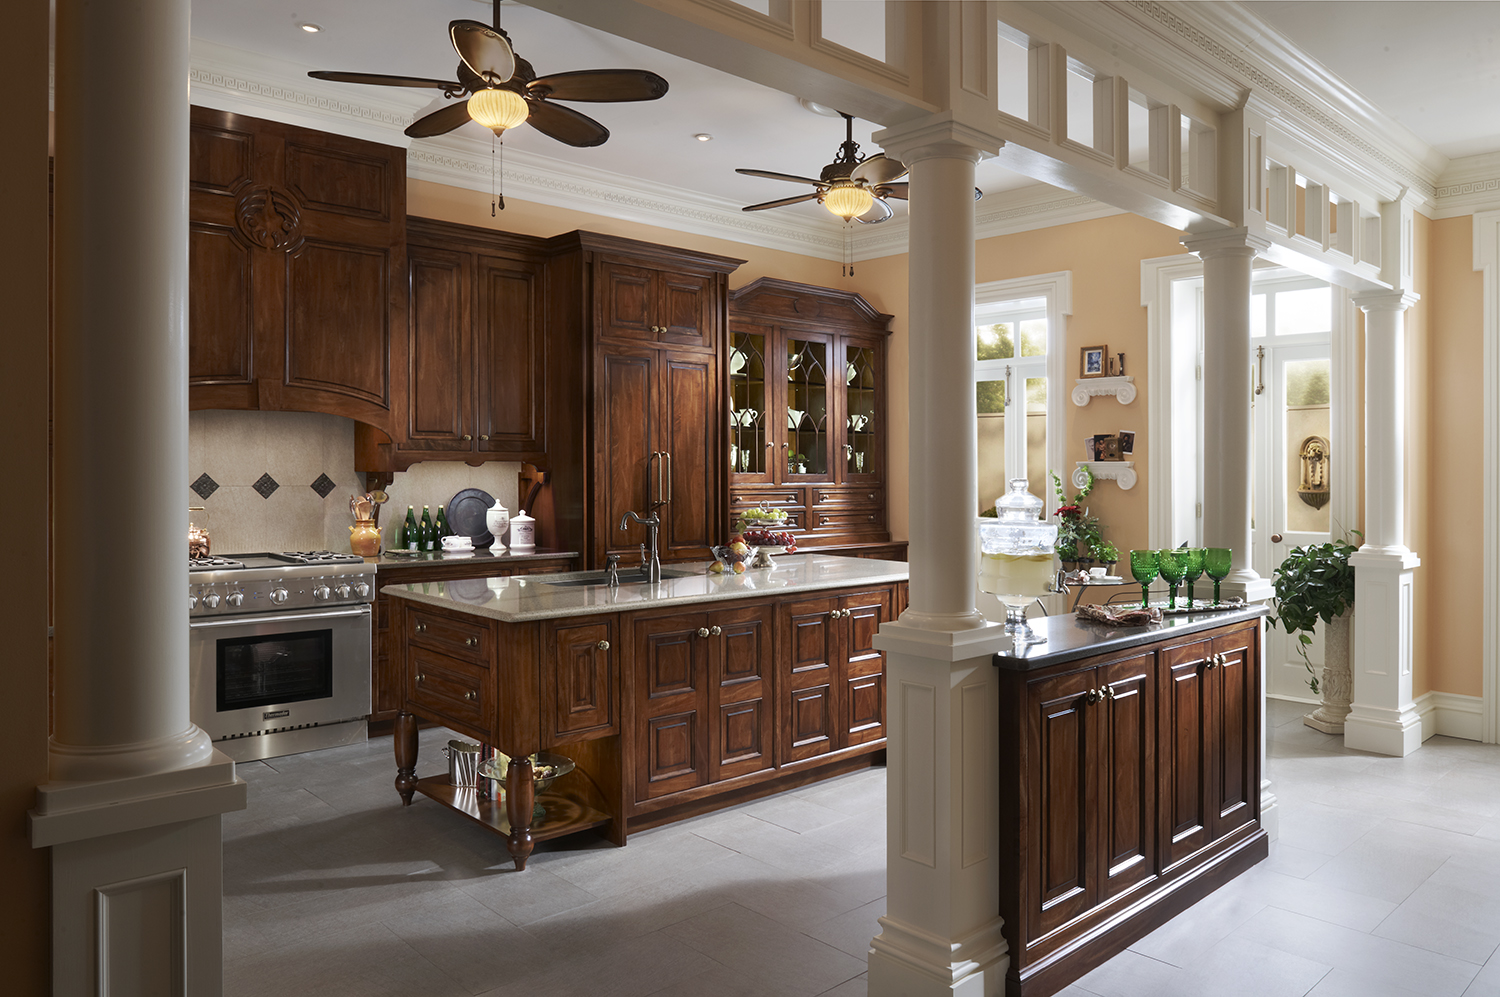 Southern Reserve Kitchen by Wood-Mode